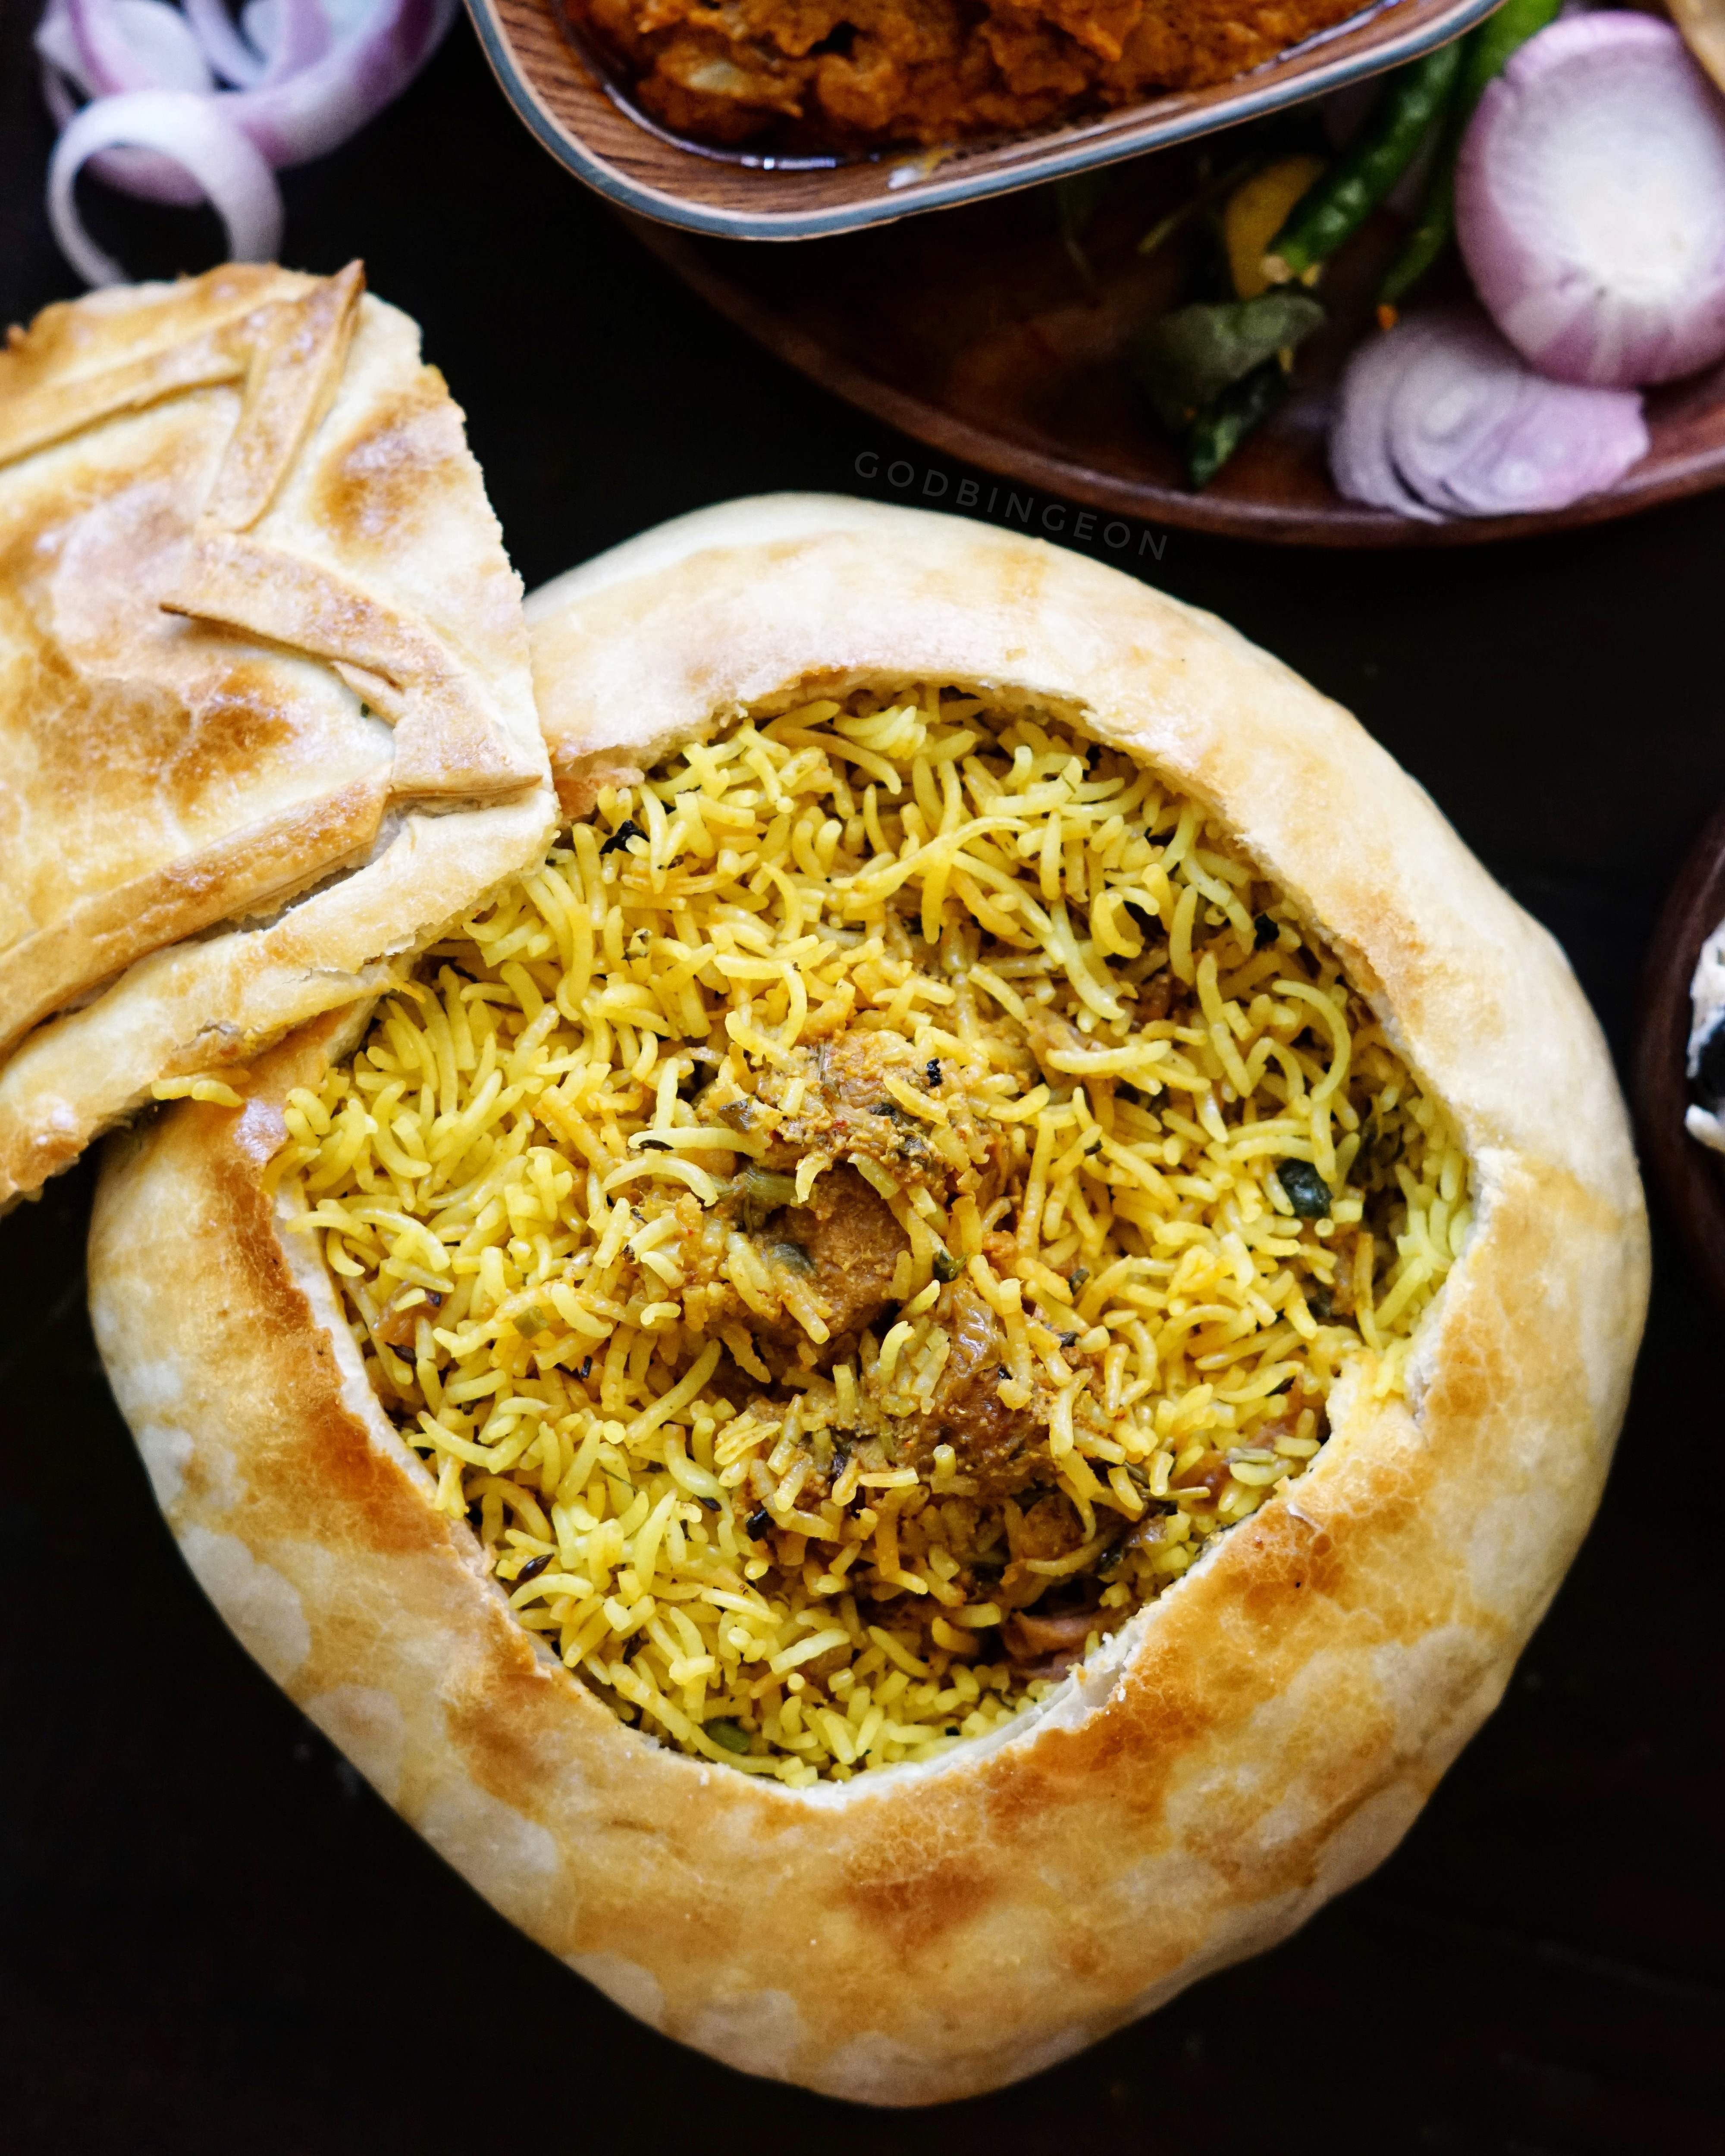 Masala: Esque - The World Of Delicious Mughlai And North Indian Cuisine